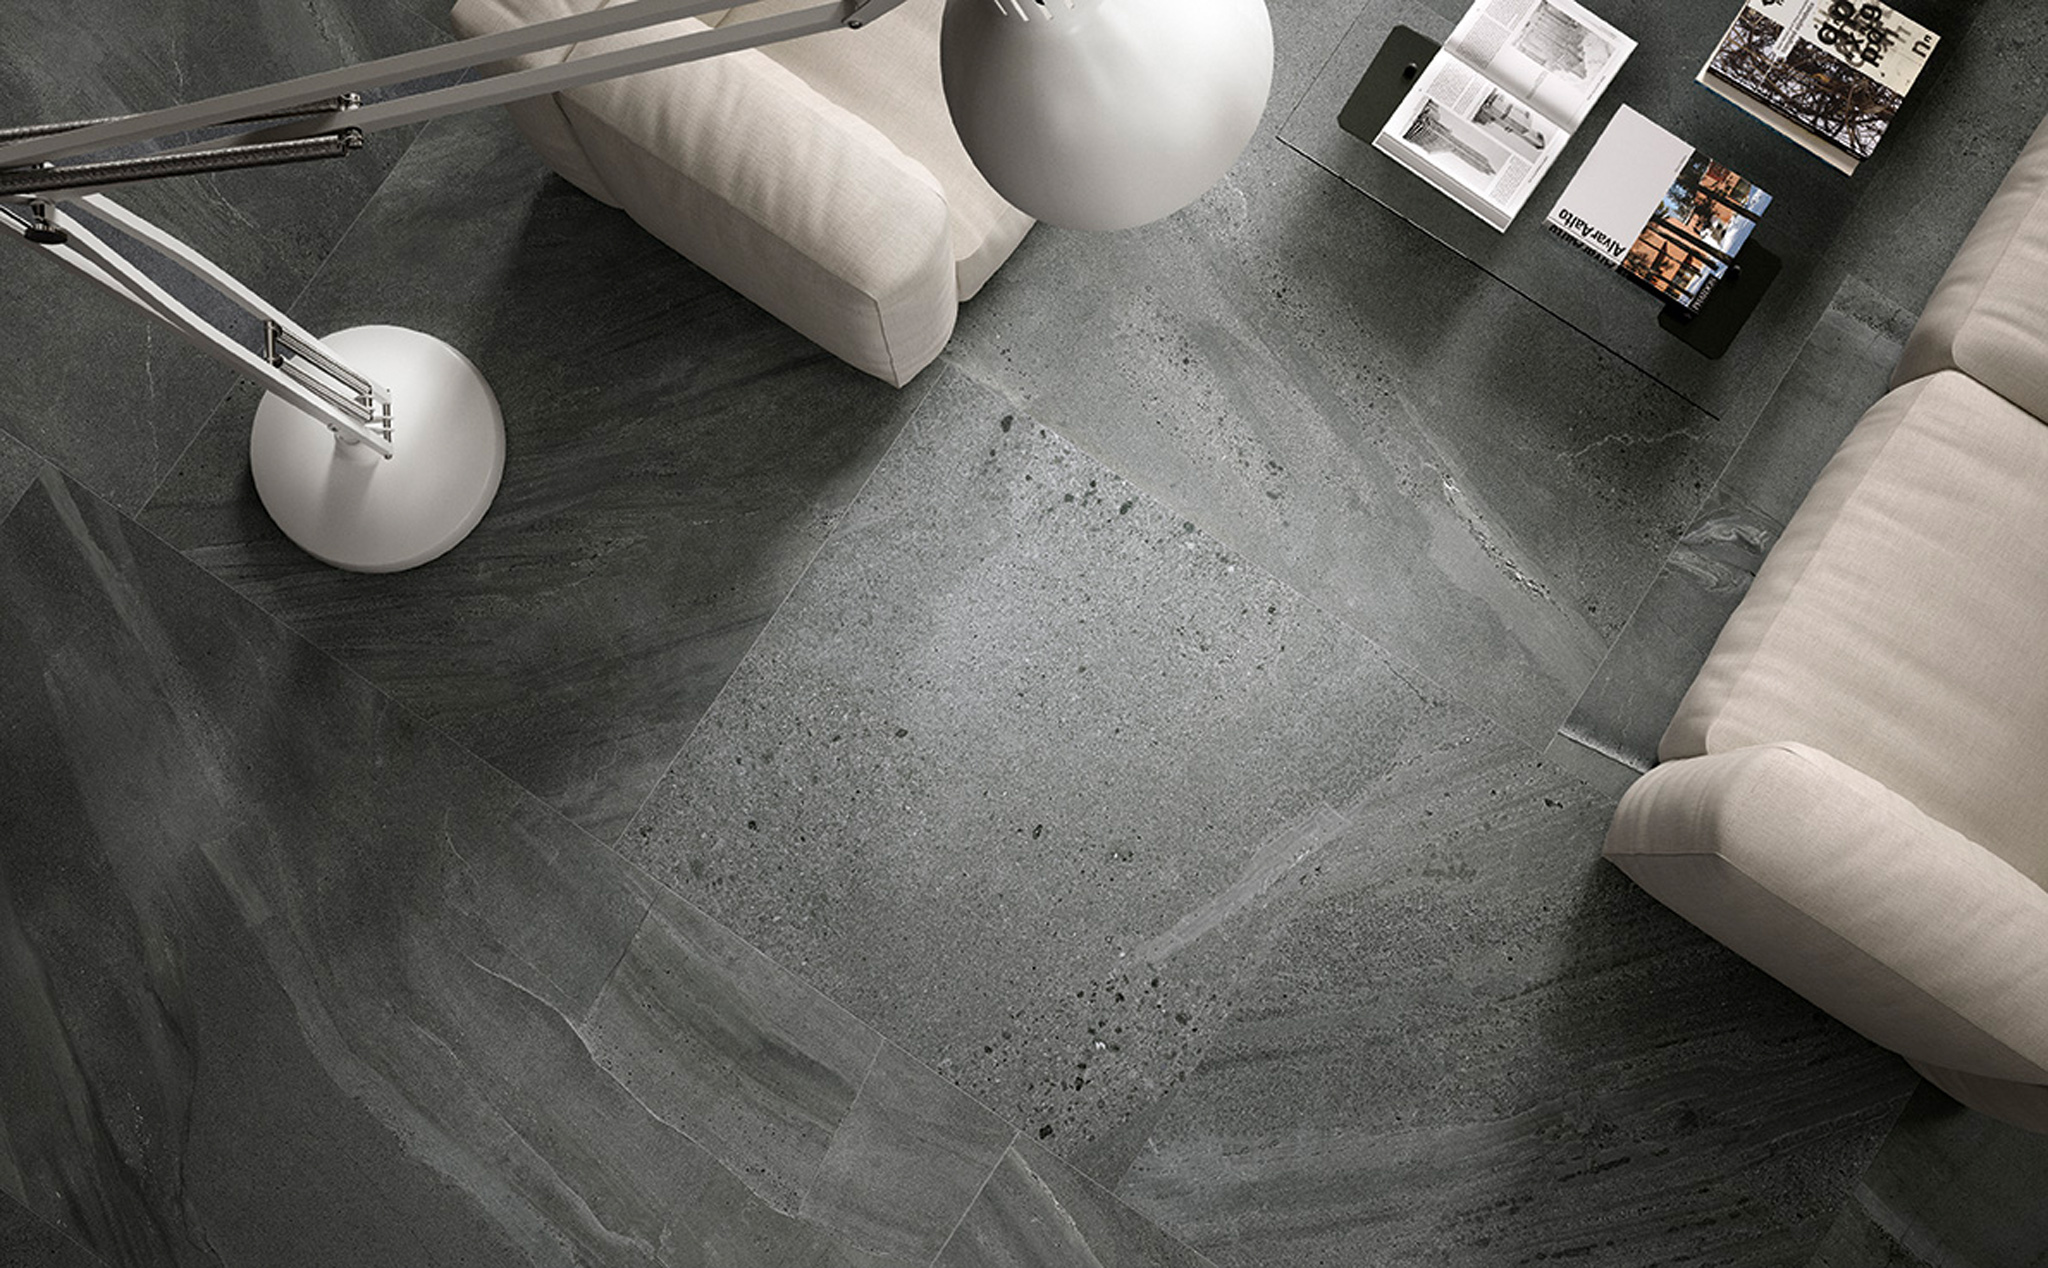 porcelain tile images: Capolavoro range high quality photo